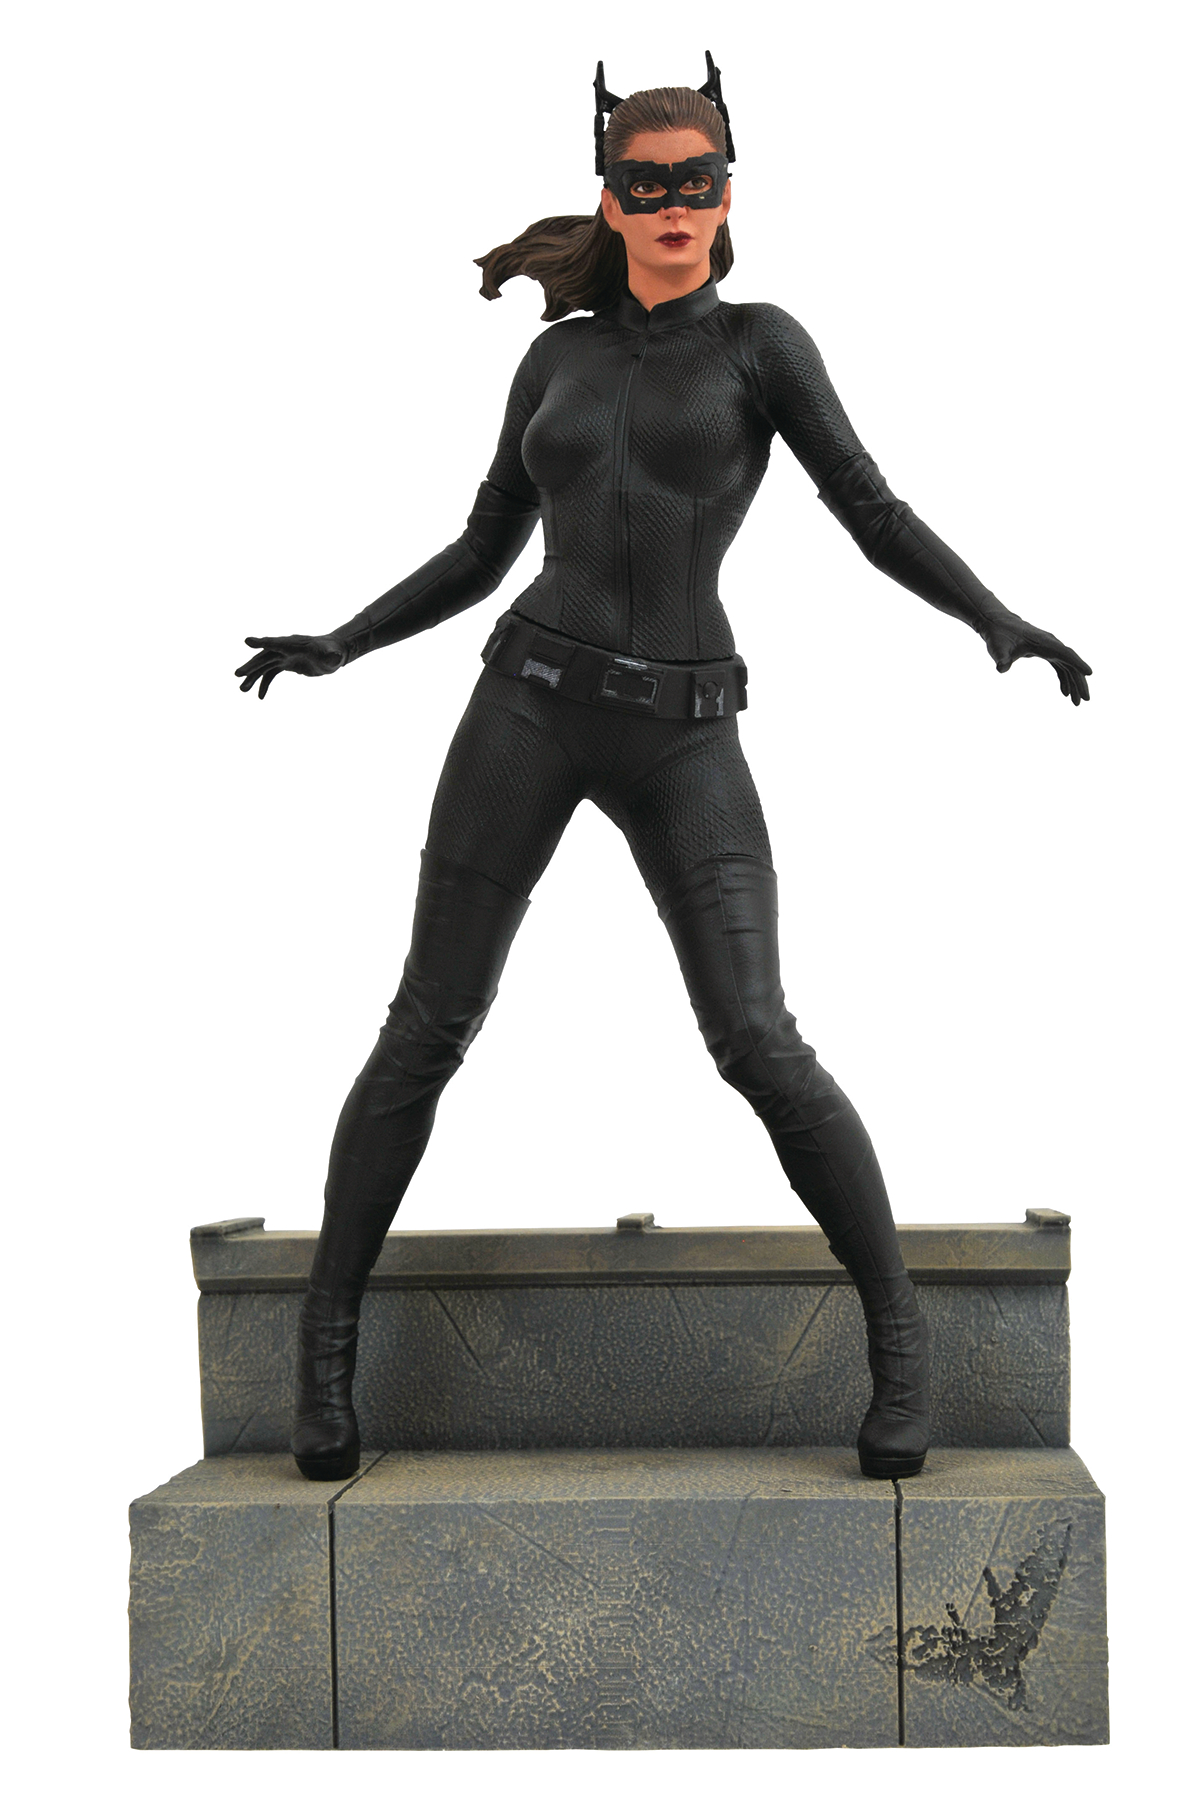 DC GALLERY DARK KNIGHT RISES MOVIE CATWOMAN PVC FIGURE